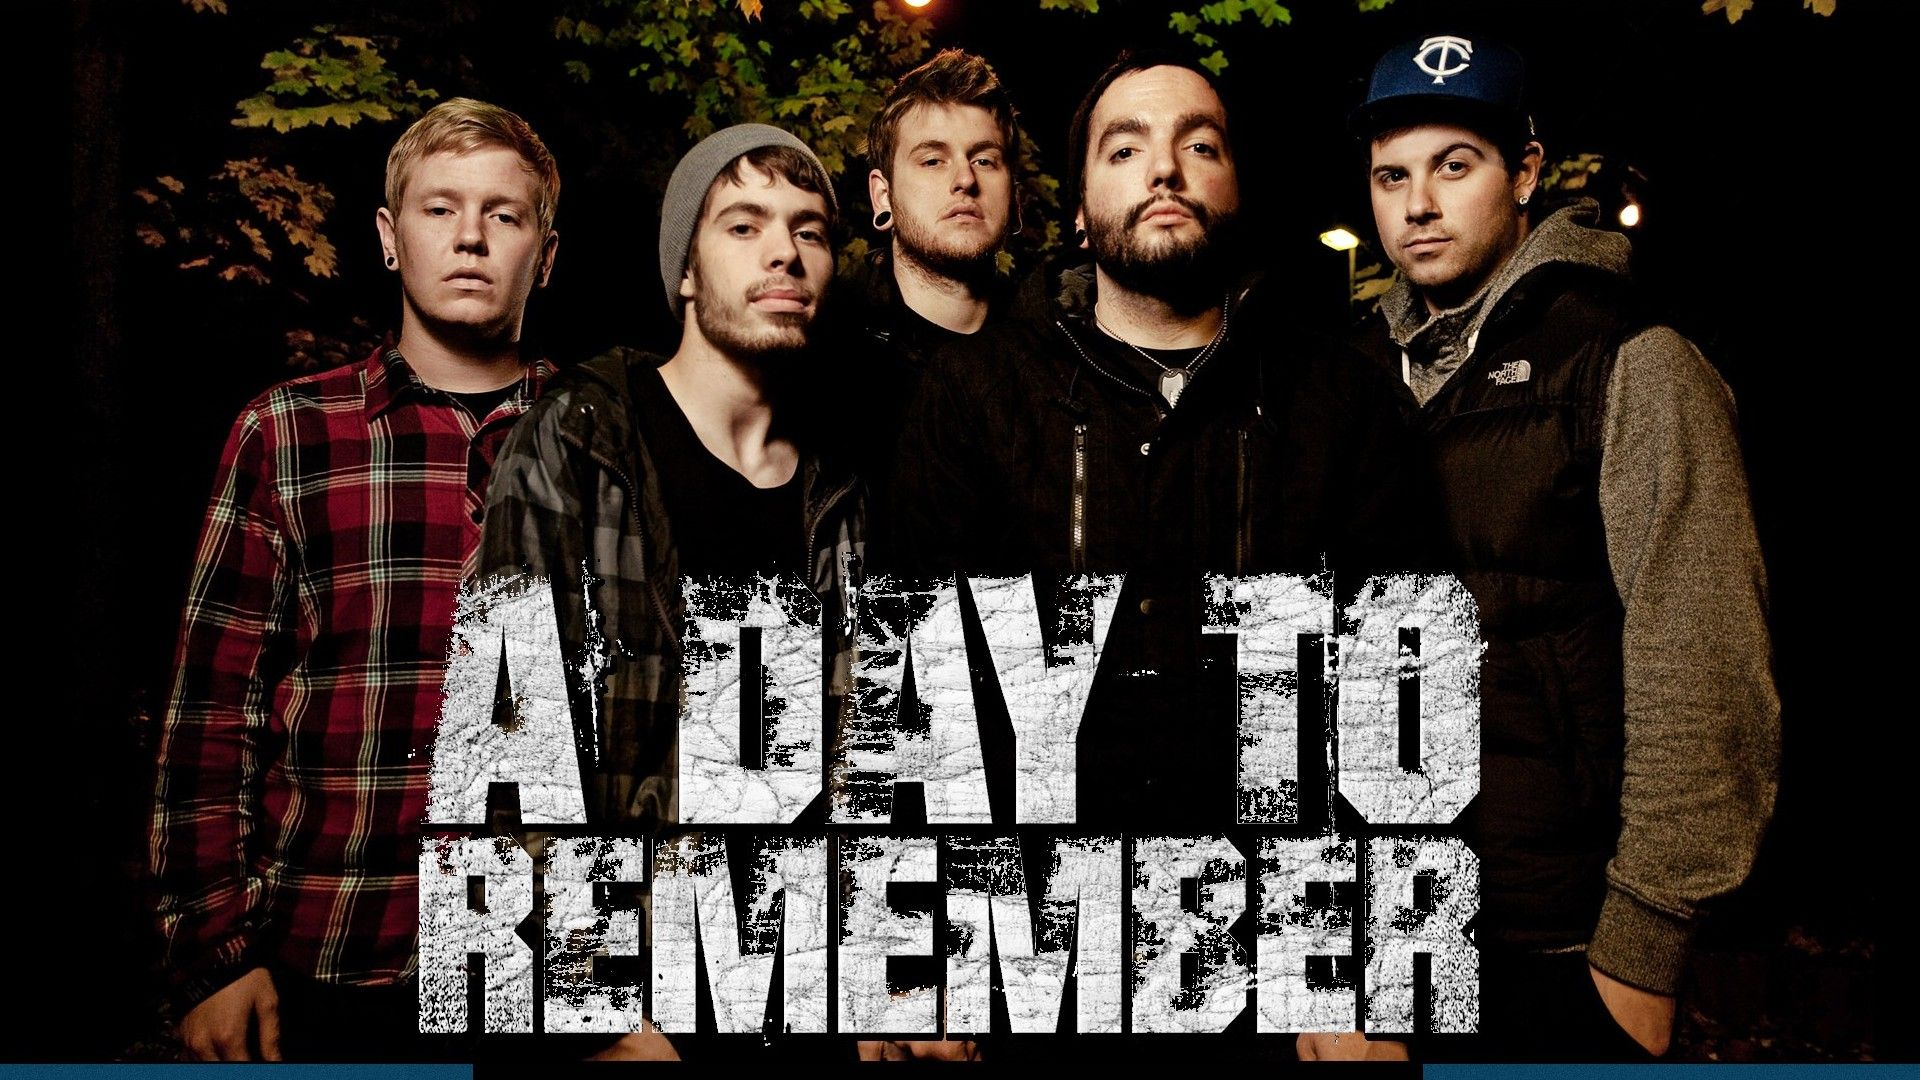 A Day To Remember Images ADTR Wallpaper And Background Photos 1680x1050 Wallpapers 43